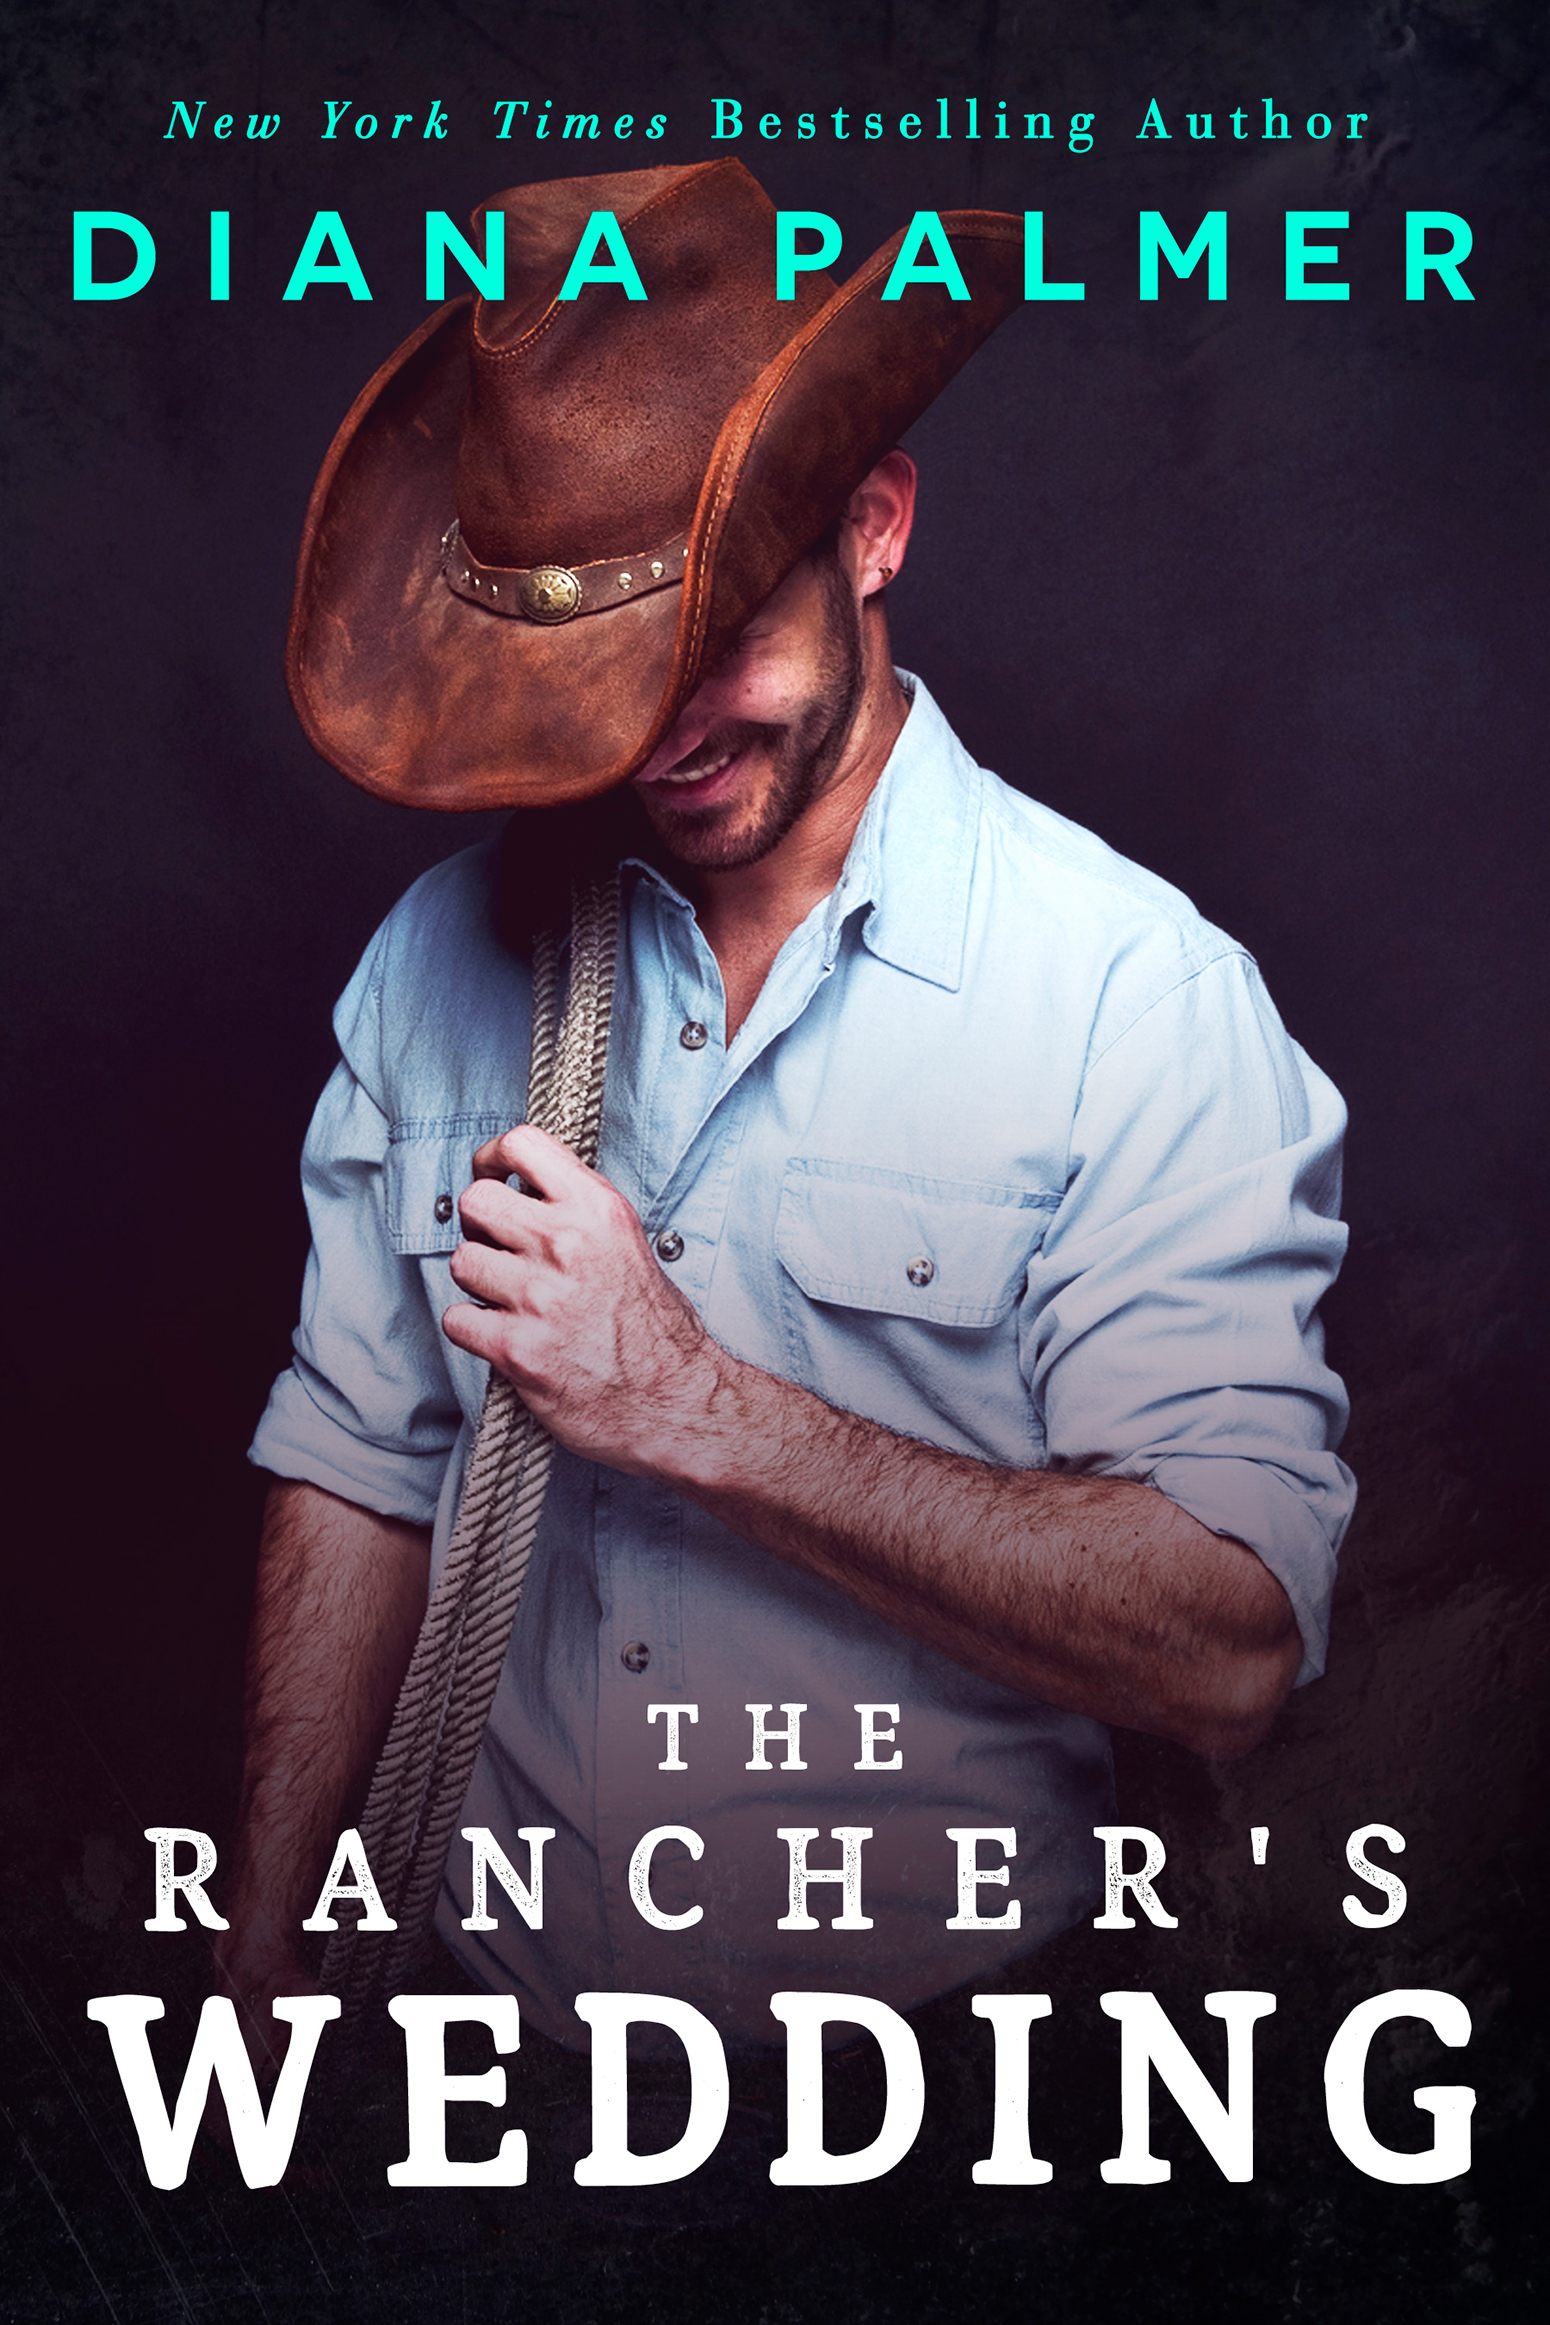 The Rancher's Wedding